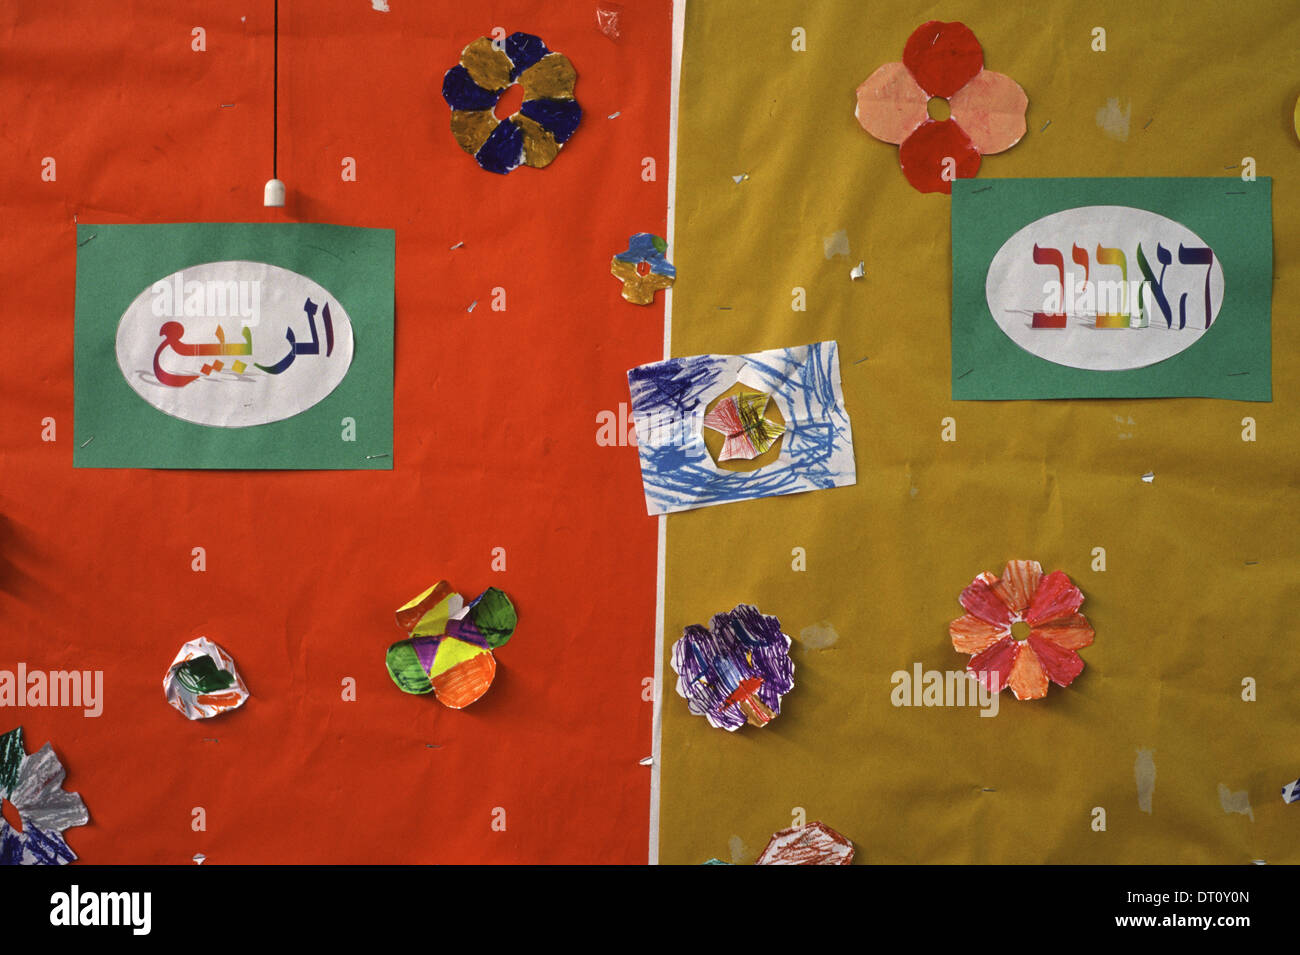 A paper board with the Hebrew and Arabic words meaning 'The Spring' in 'Hand in Hand' integrated, bilingual Hebrew-Arabic primary school for Jewish and Arab children located in West Jerusalem Israel - Stock Image